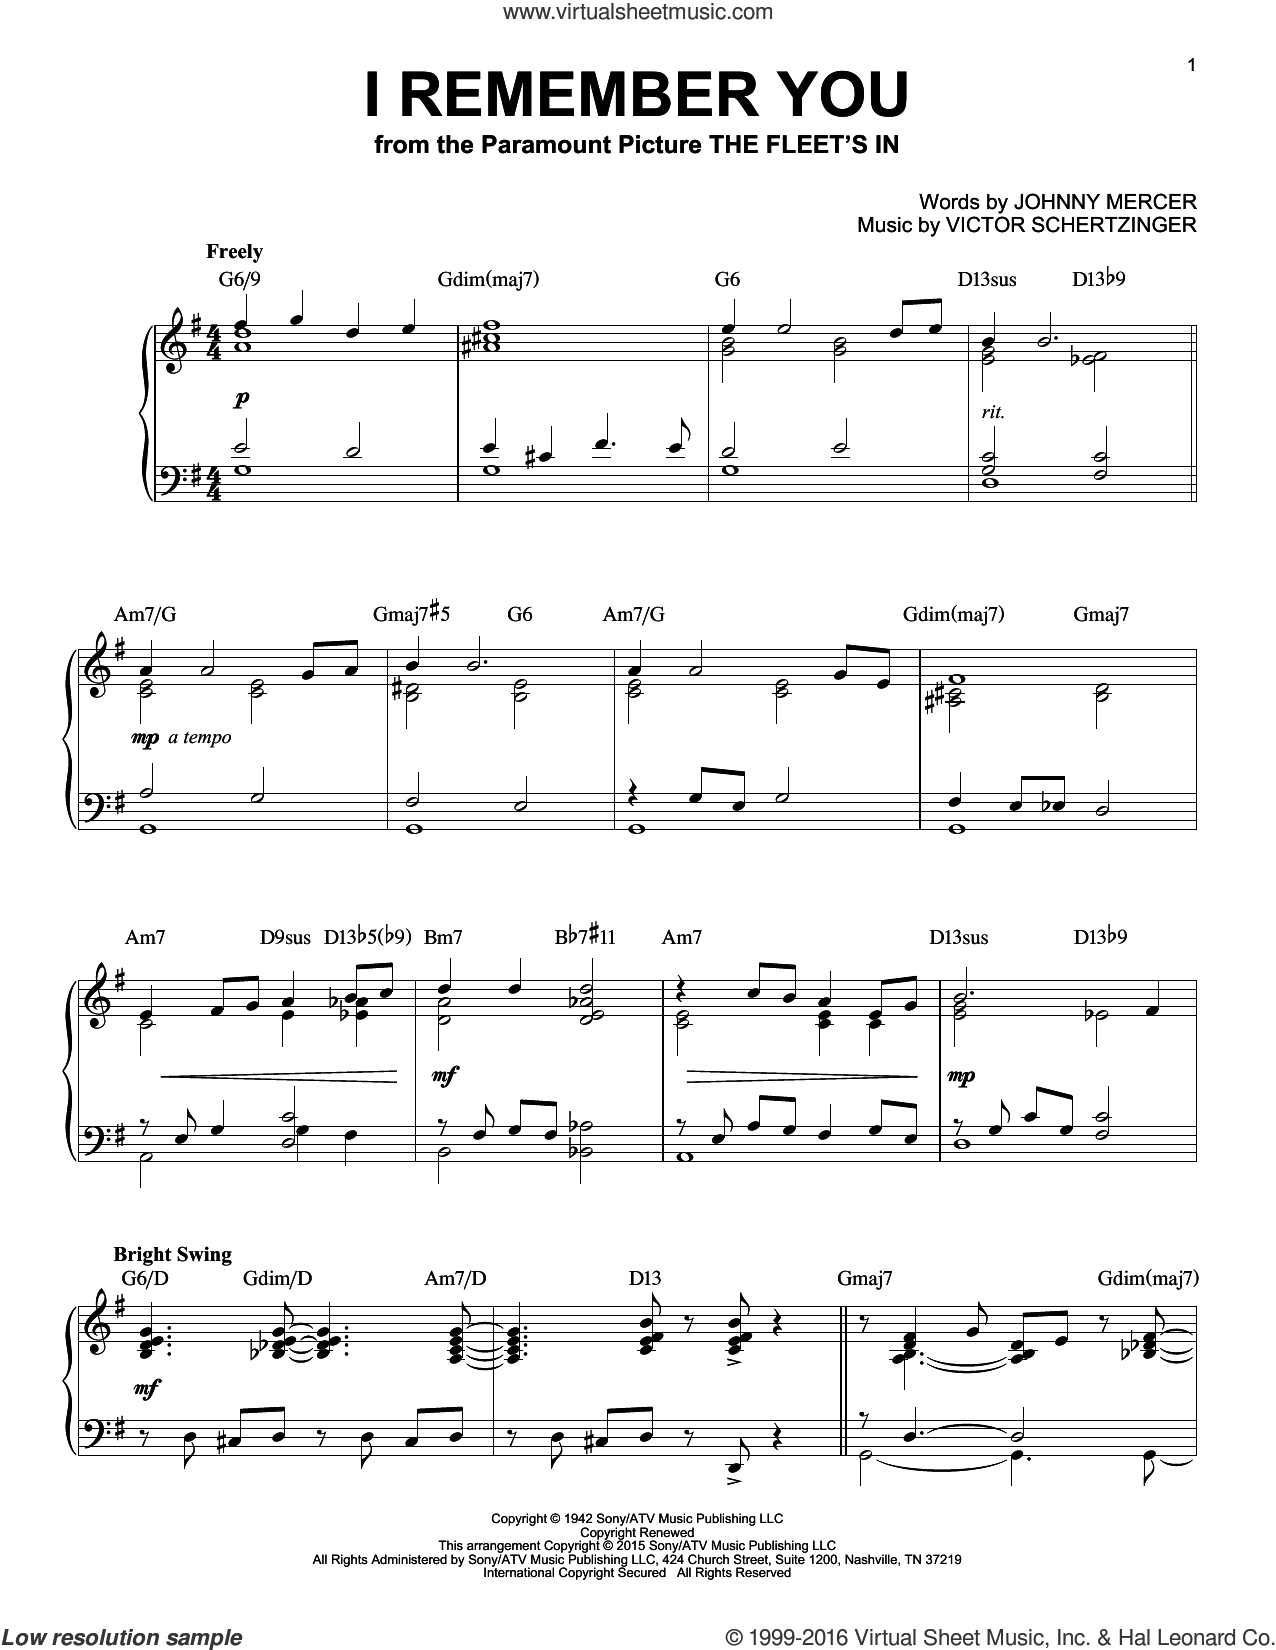 I Remember You sheet music for piano solo by Johnny Mercer, Jo Stafford and Victor Schertzinger, intermediate skill level